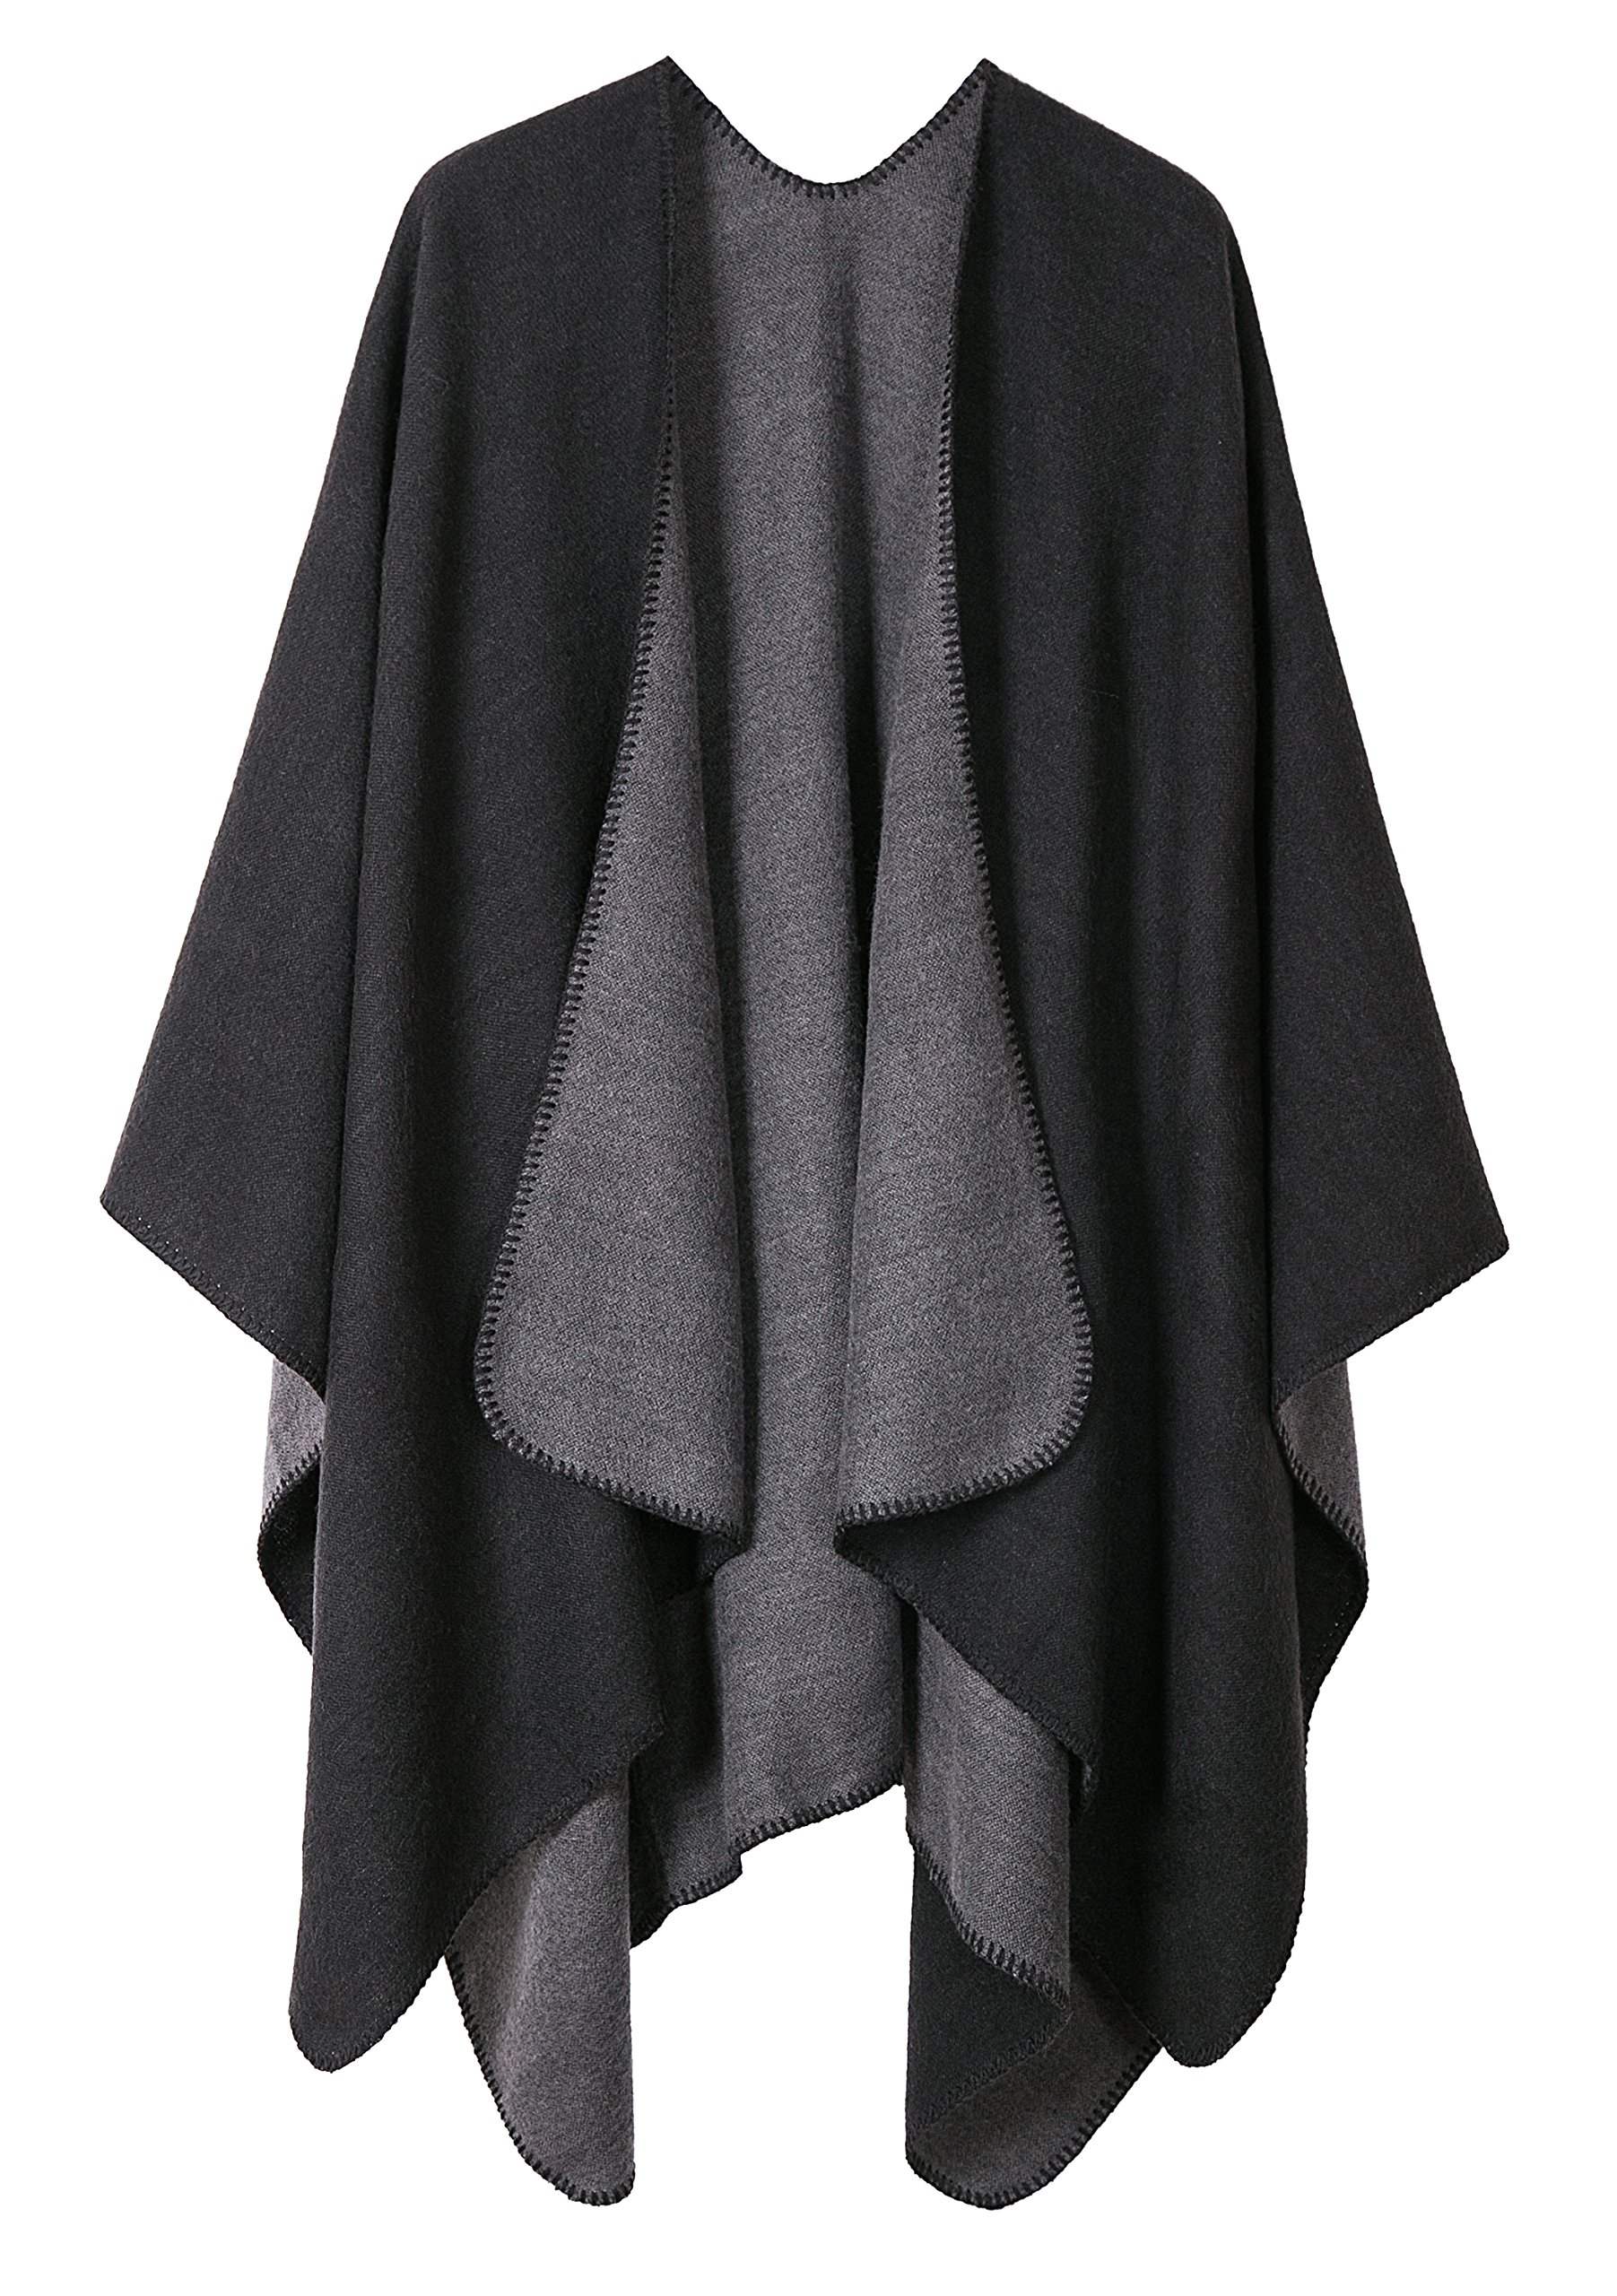 Warm Shawls And Wraps Open Front Cardigan Elegant Solid Color Poncho Cape Coat (Black)